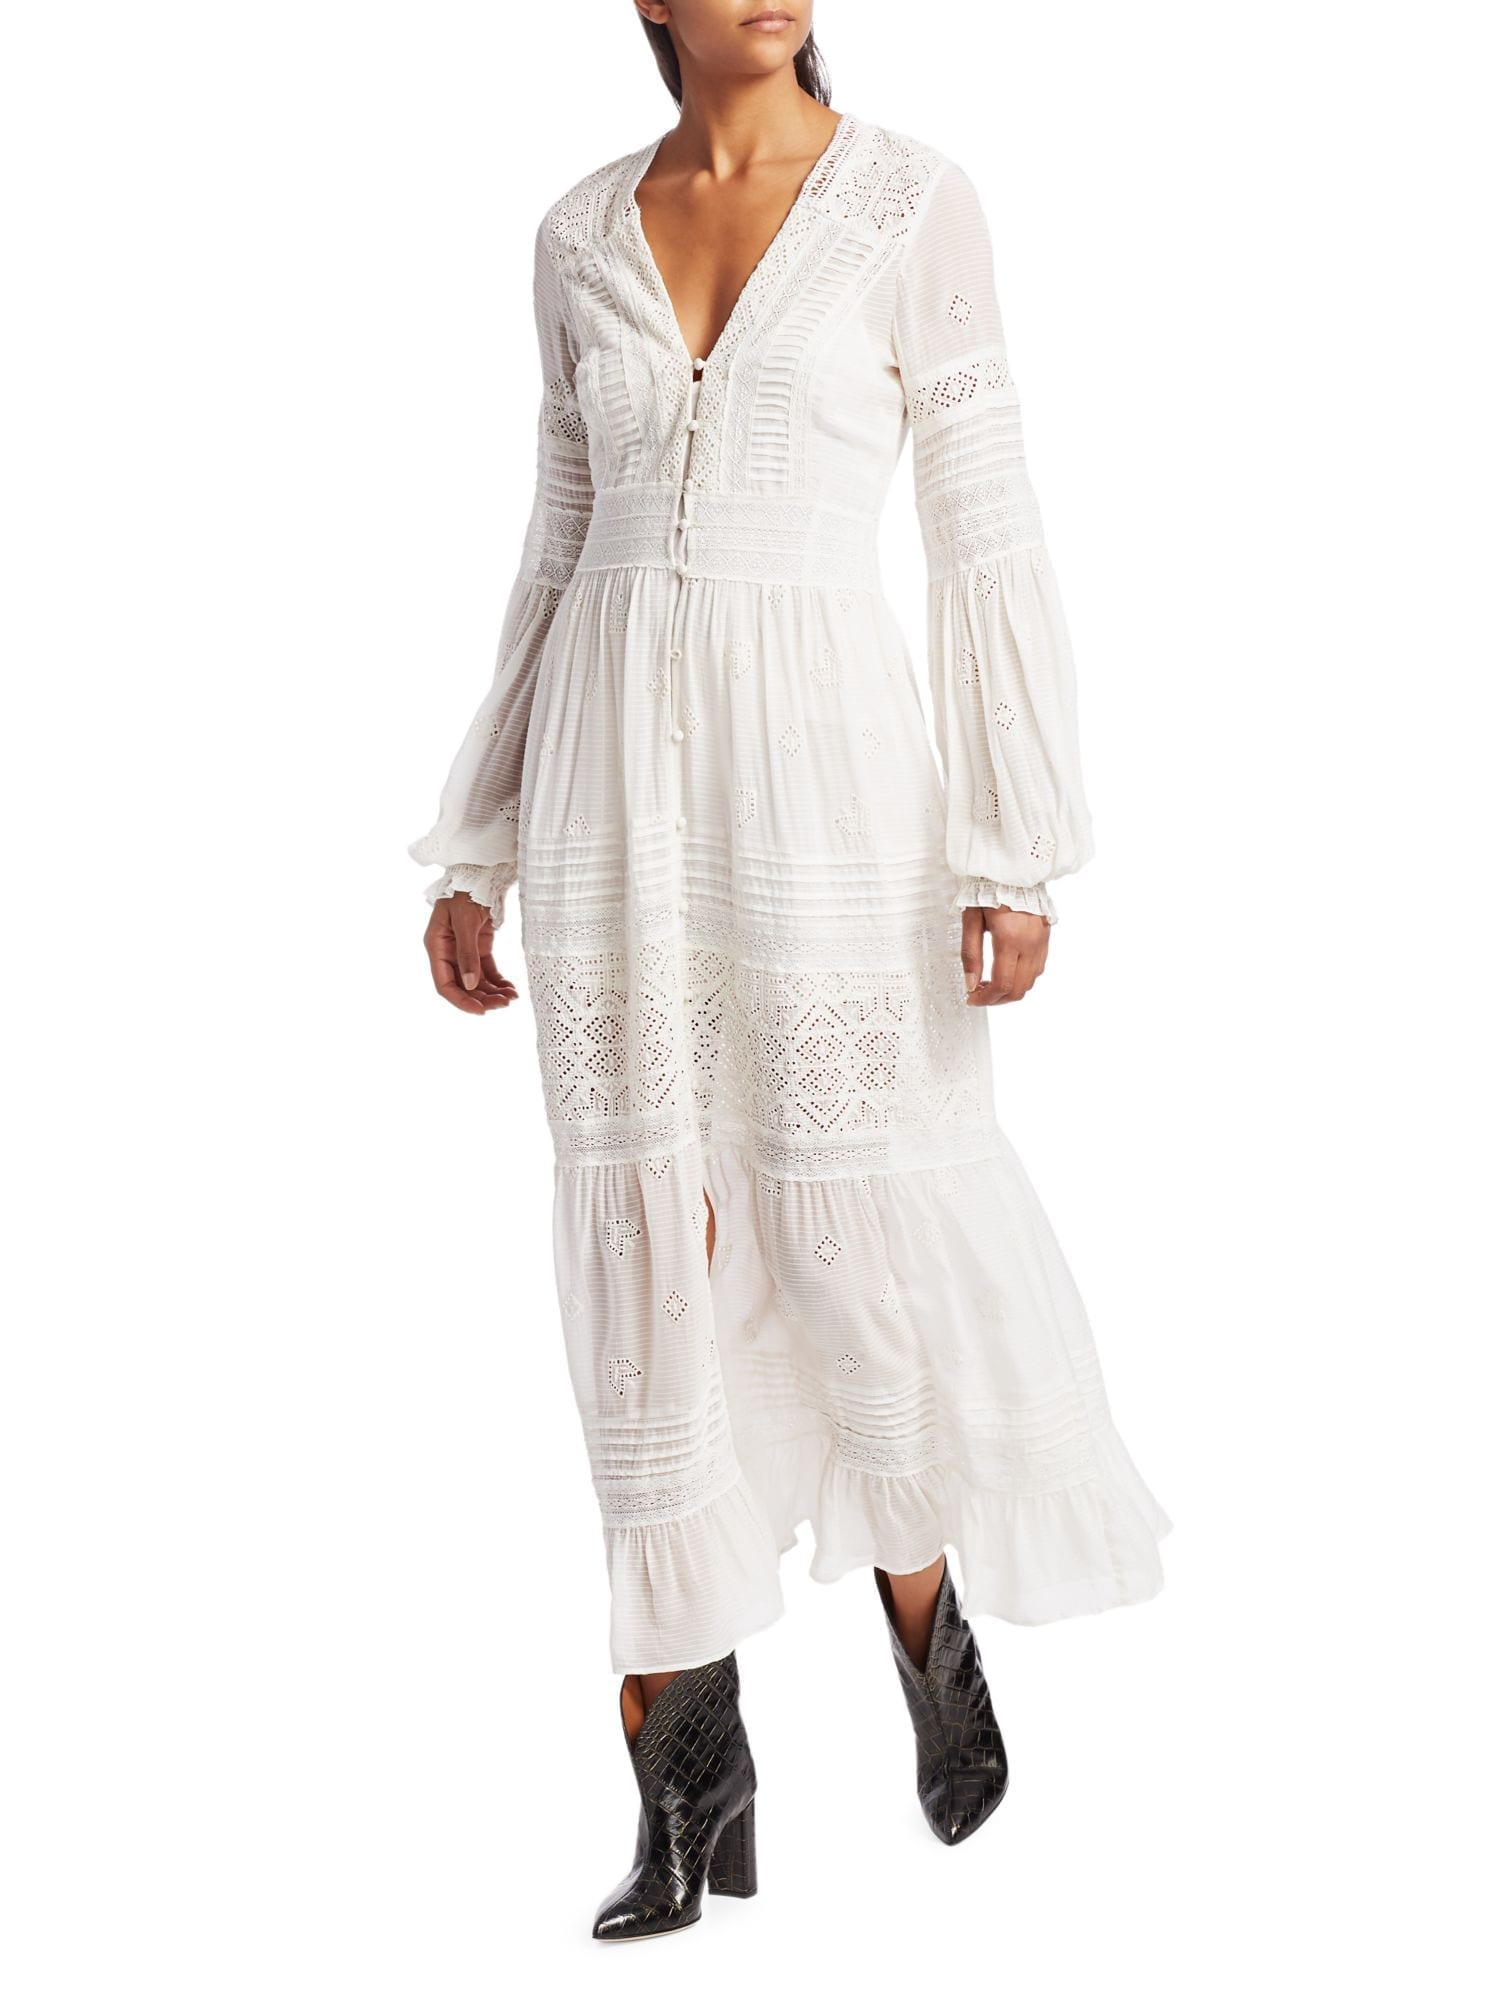 FREE PEOPLE Lisa Lace Eyelet Midi Shirt Dress